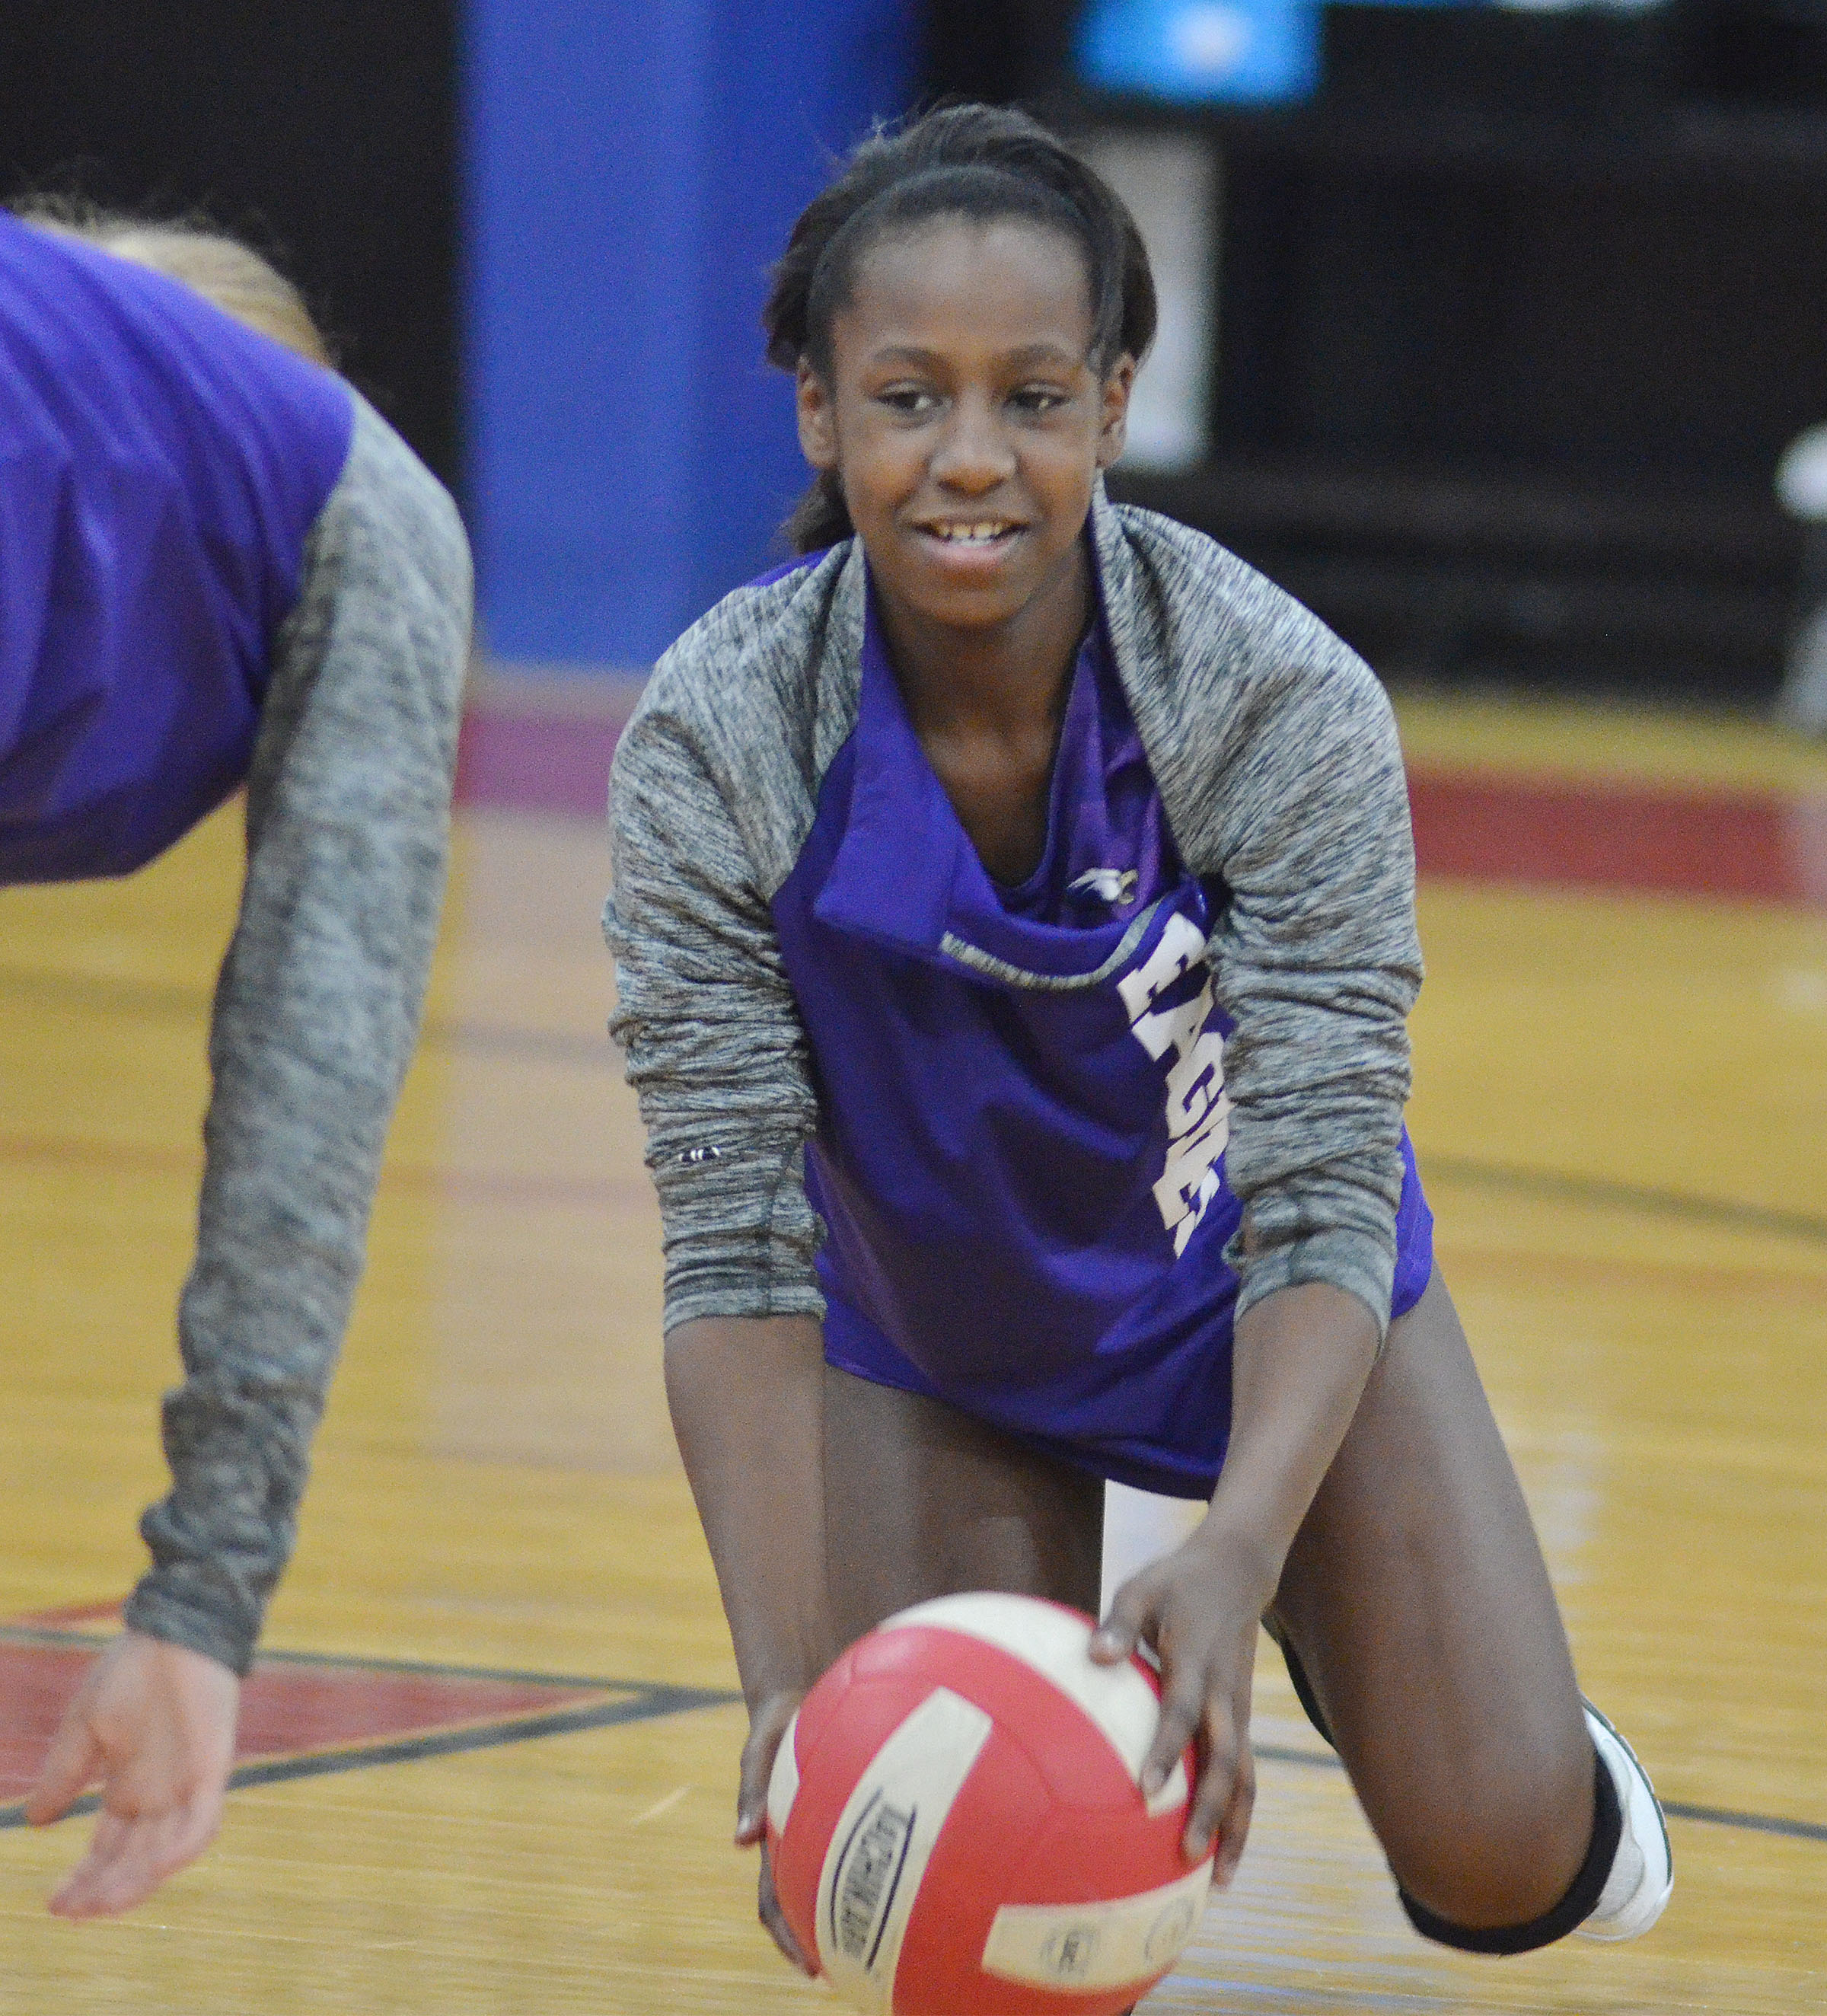 CMS seventh-grader Myricle Gholston warms up before the match.